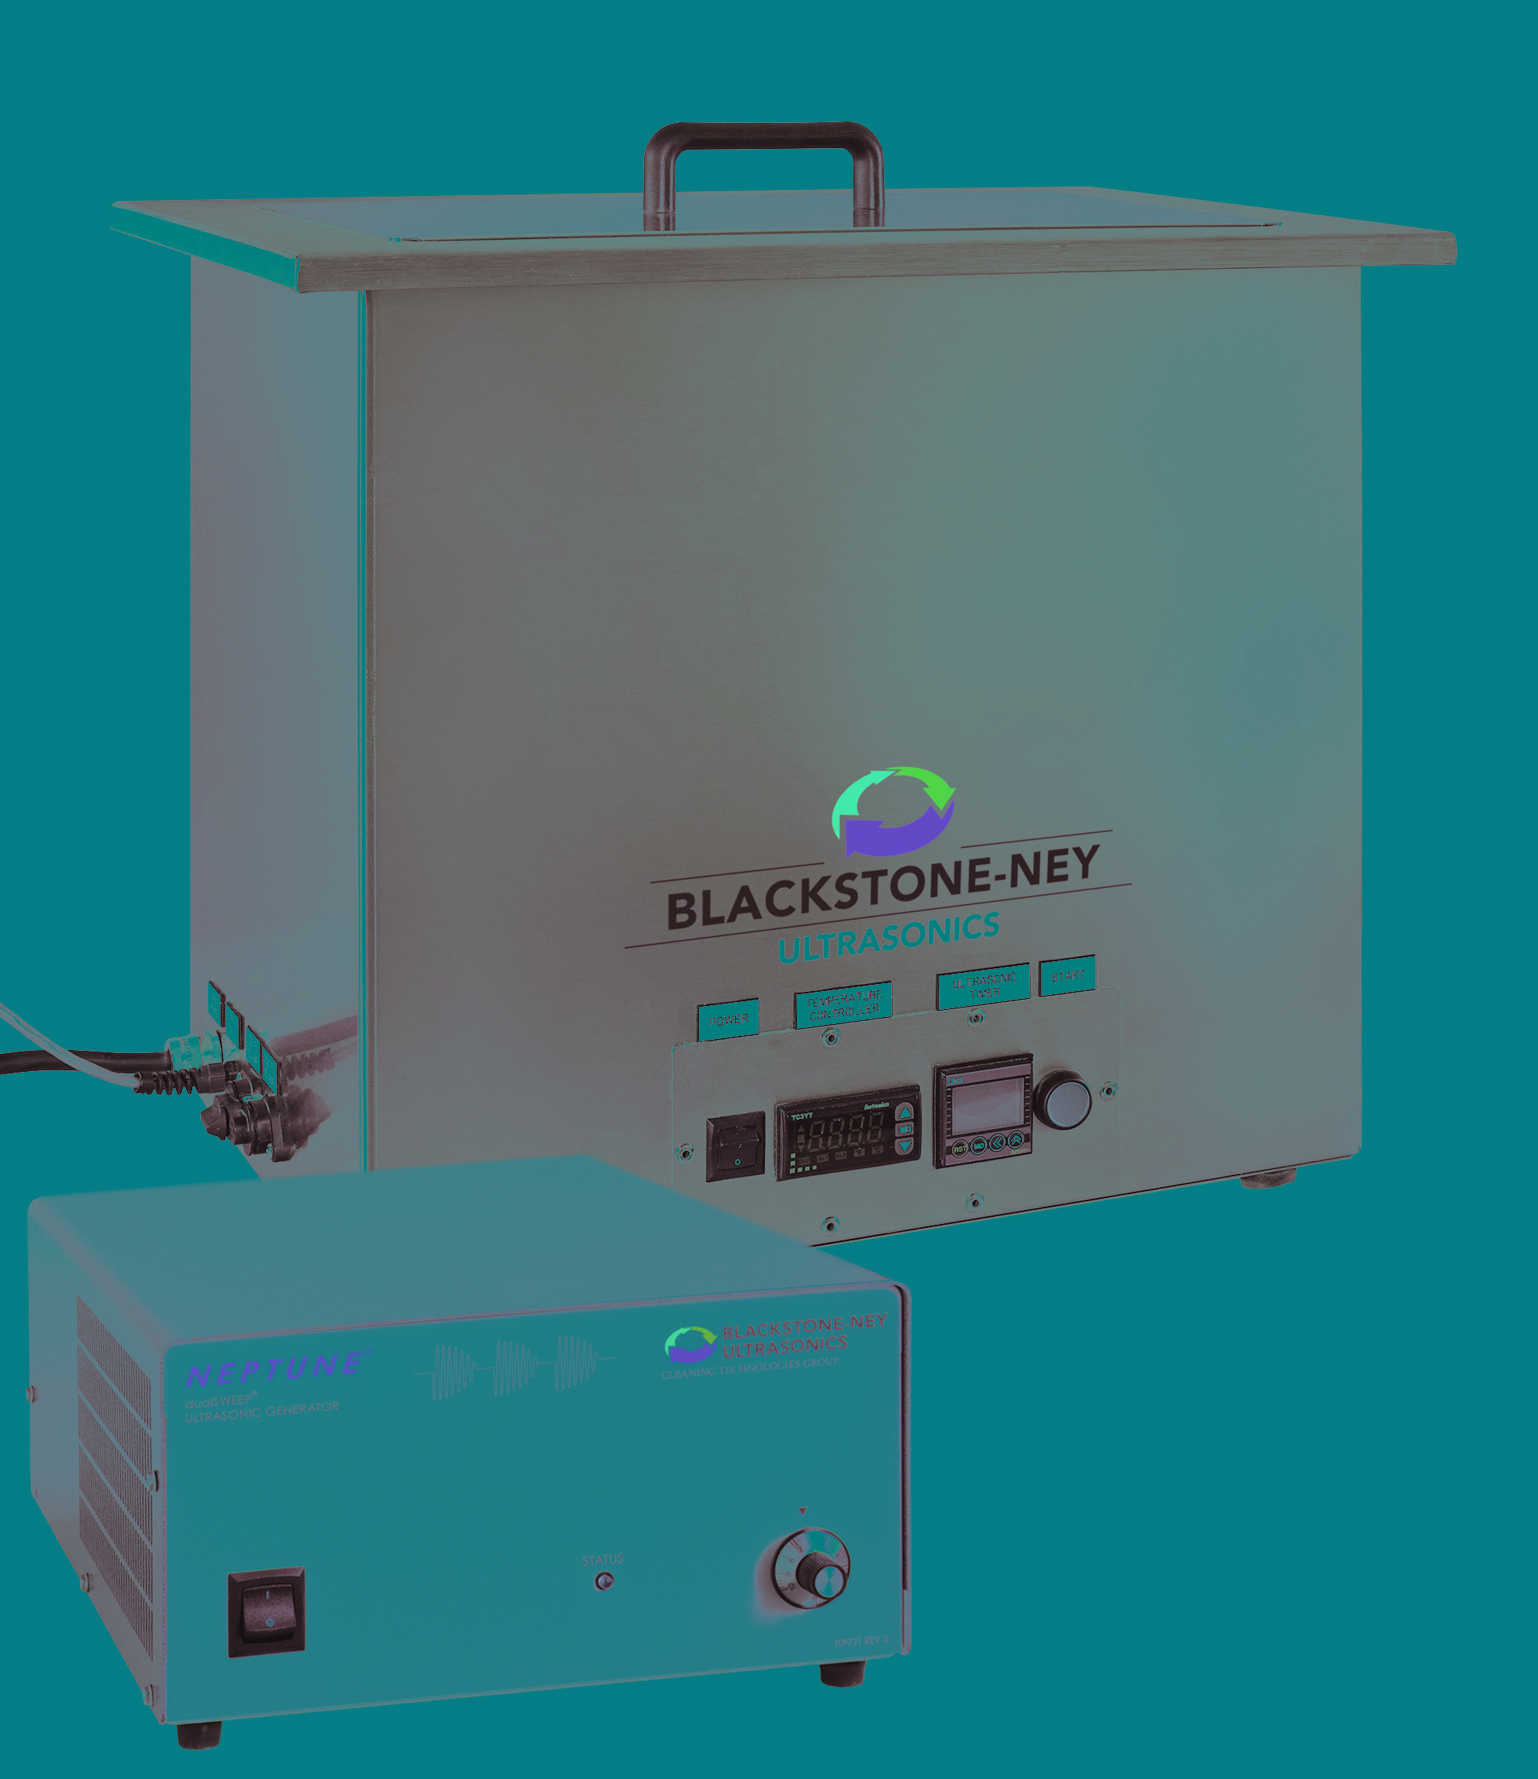 BLACKSTONE-NEY ULTRASONICS INTRODUCES NEW CLEANING SOLUTIONS AT SPIE PHOTONICS WEST.